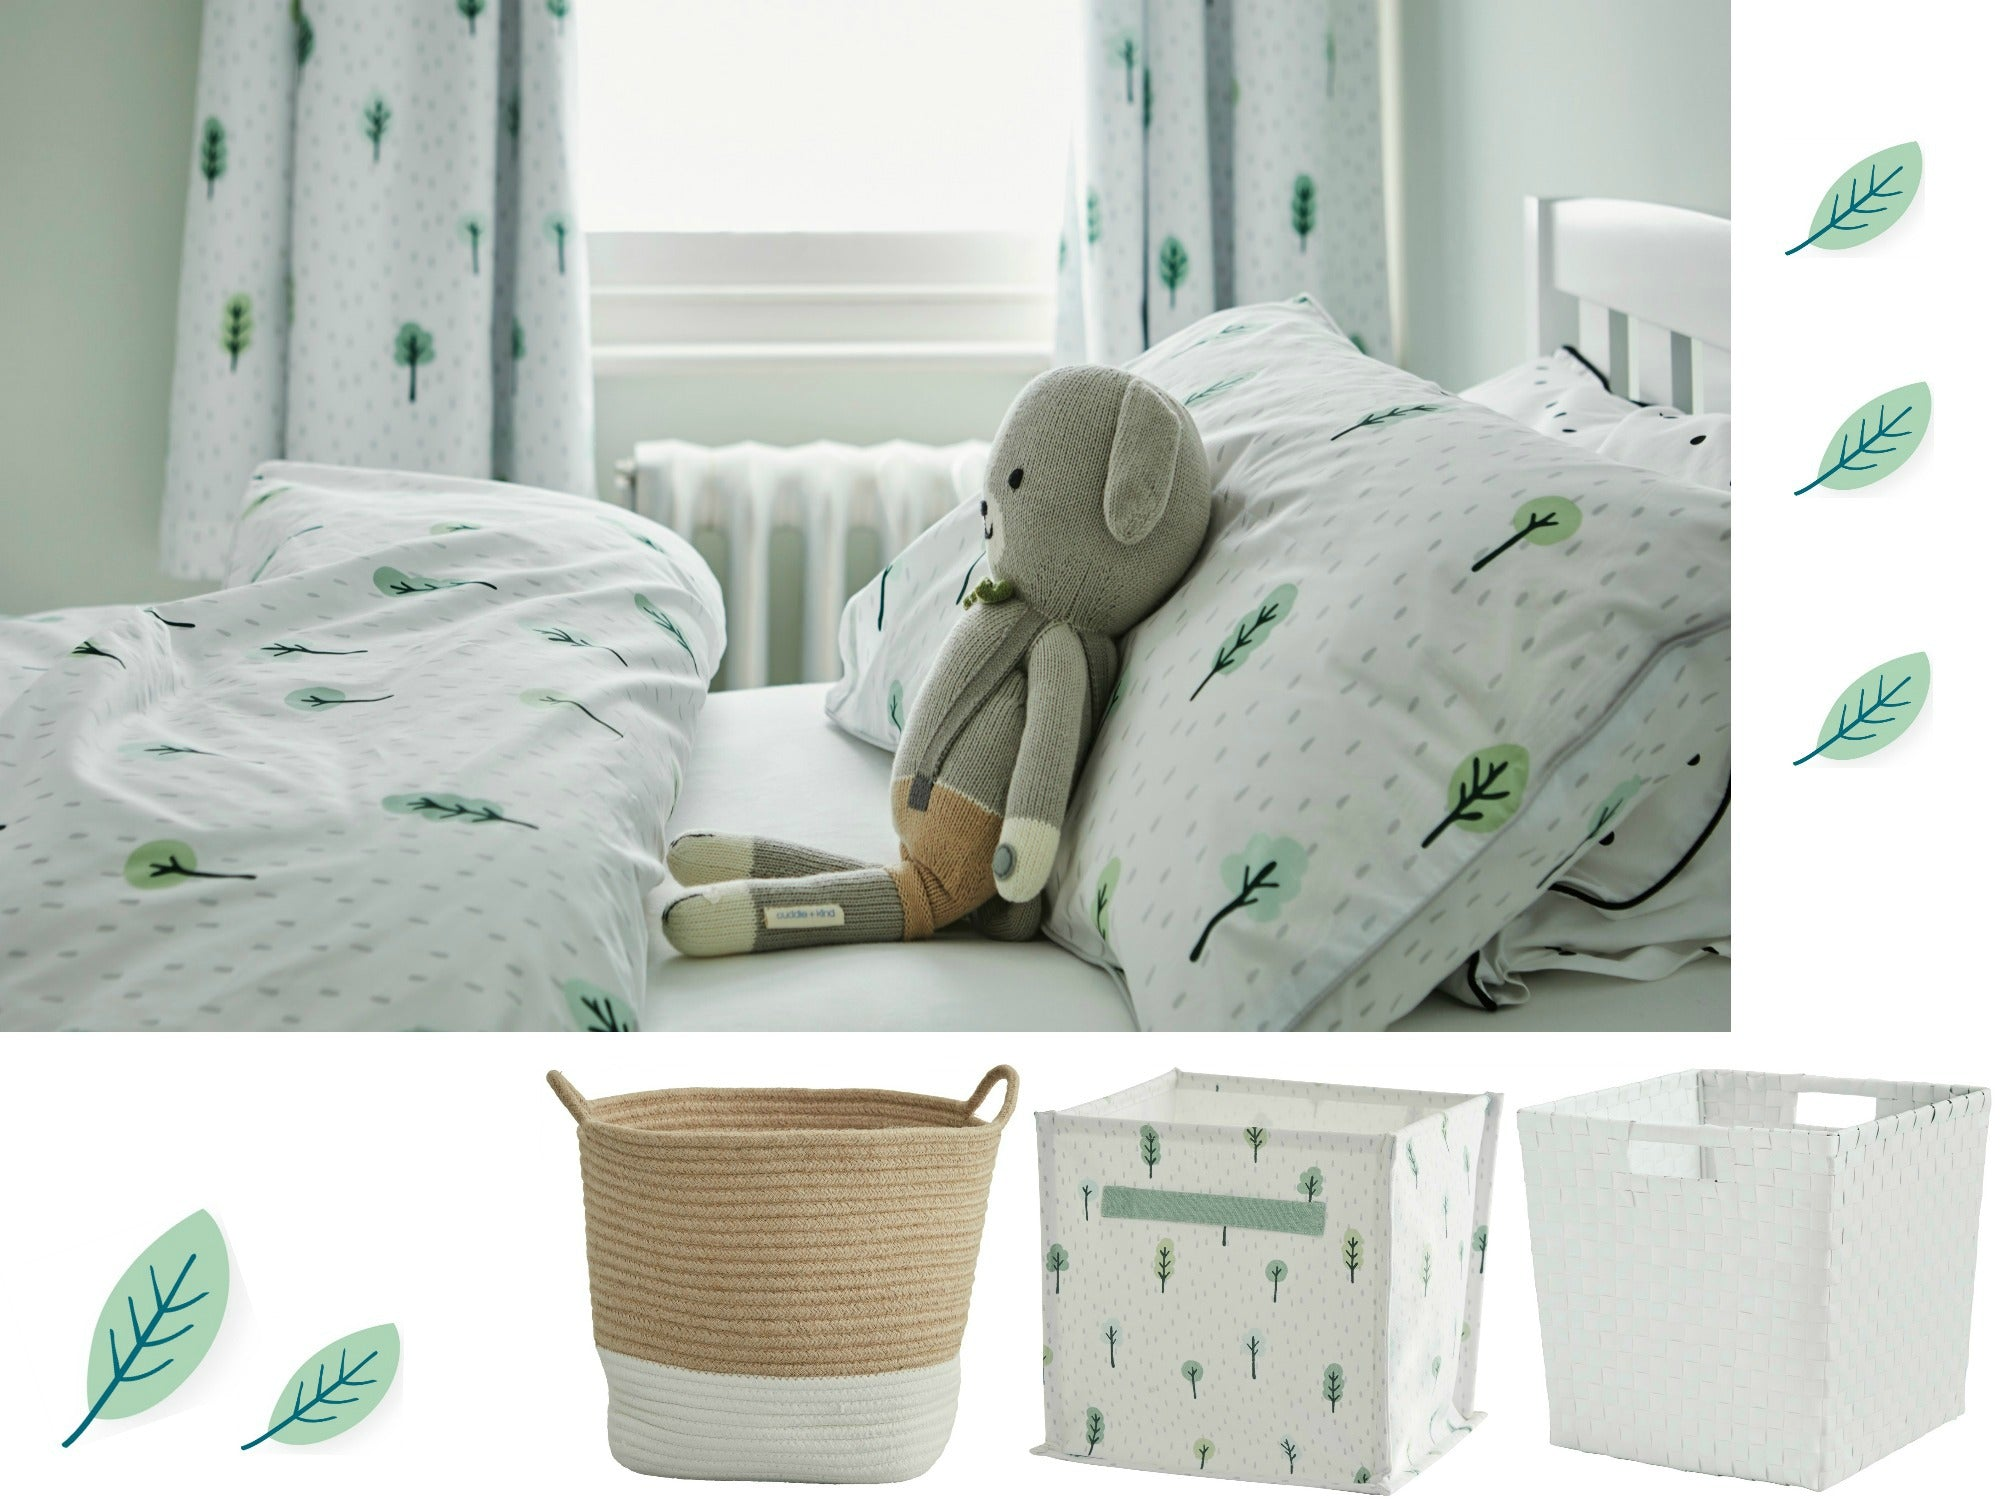 Room Accessories: Snuggly Bedding And Stylish Storage